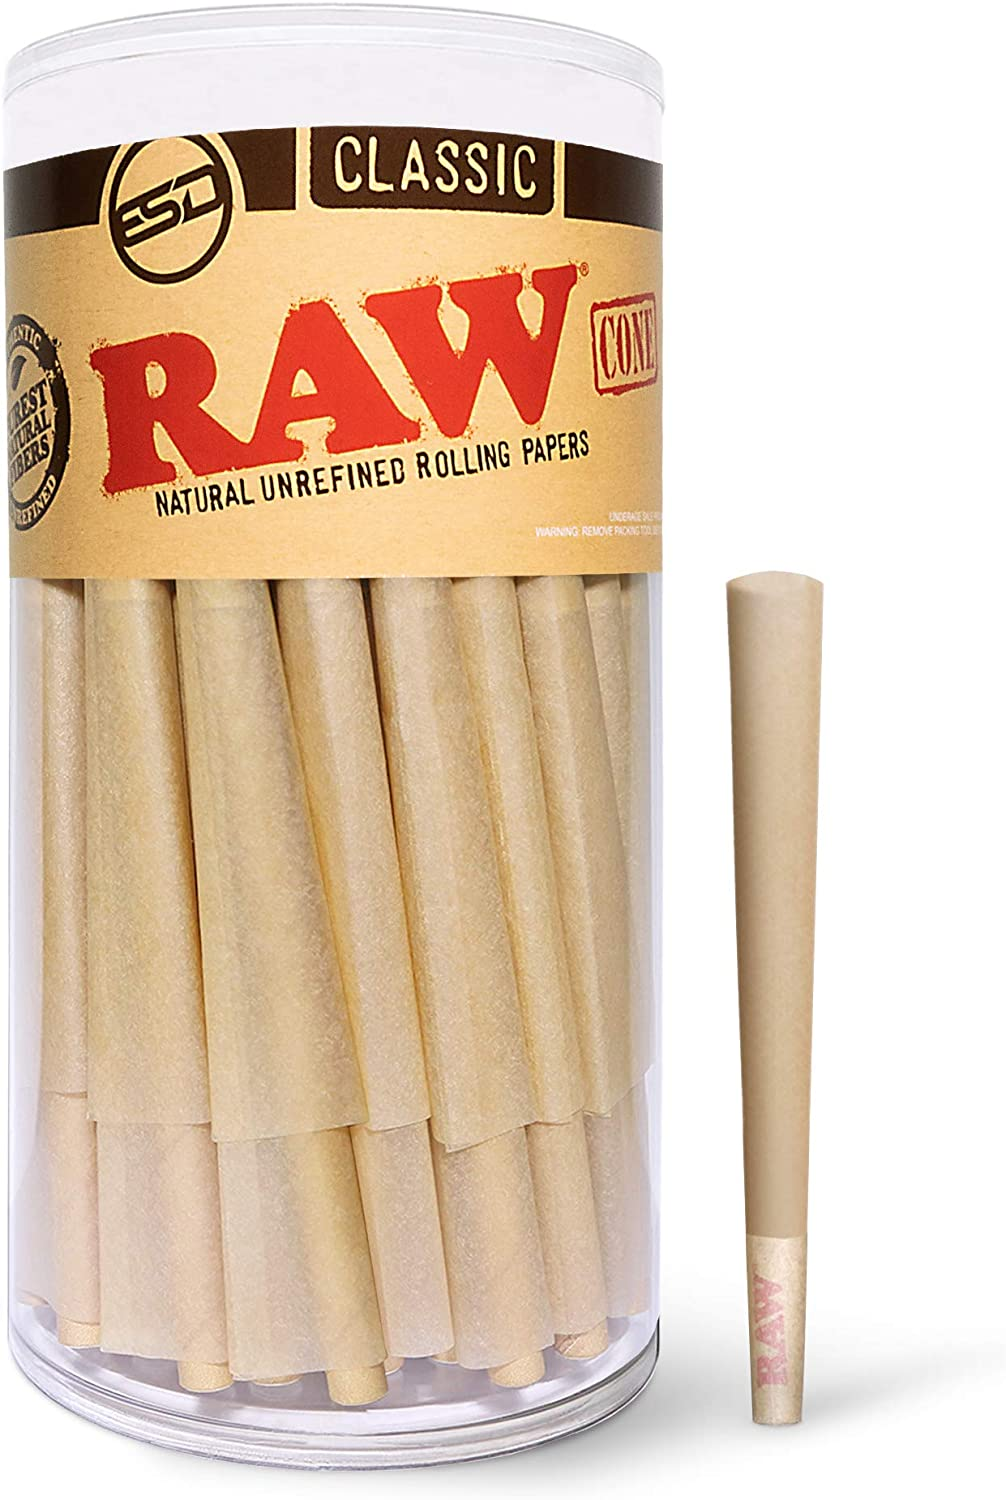 RAW Cones Classic 1 1/4 Size   150 Pack   Natural Pre Rolled Rolling Paper with Tips & Packing Sticks Included